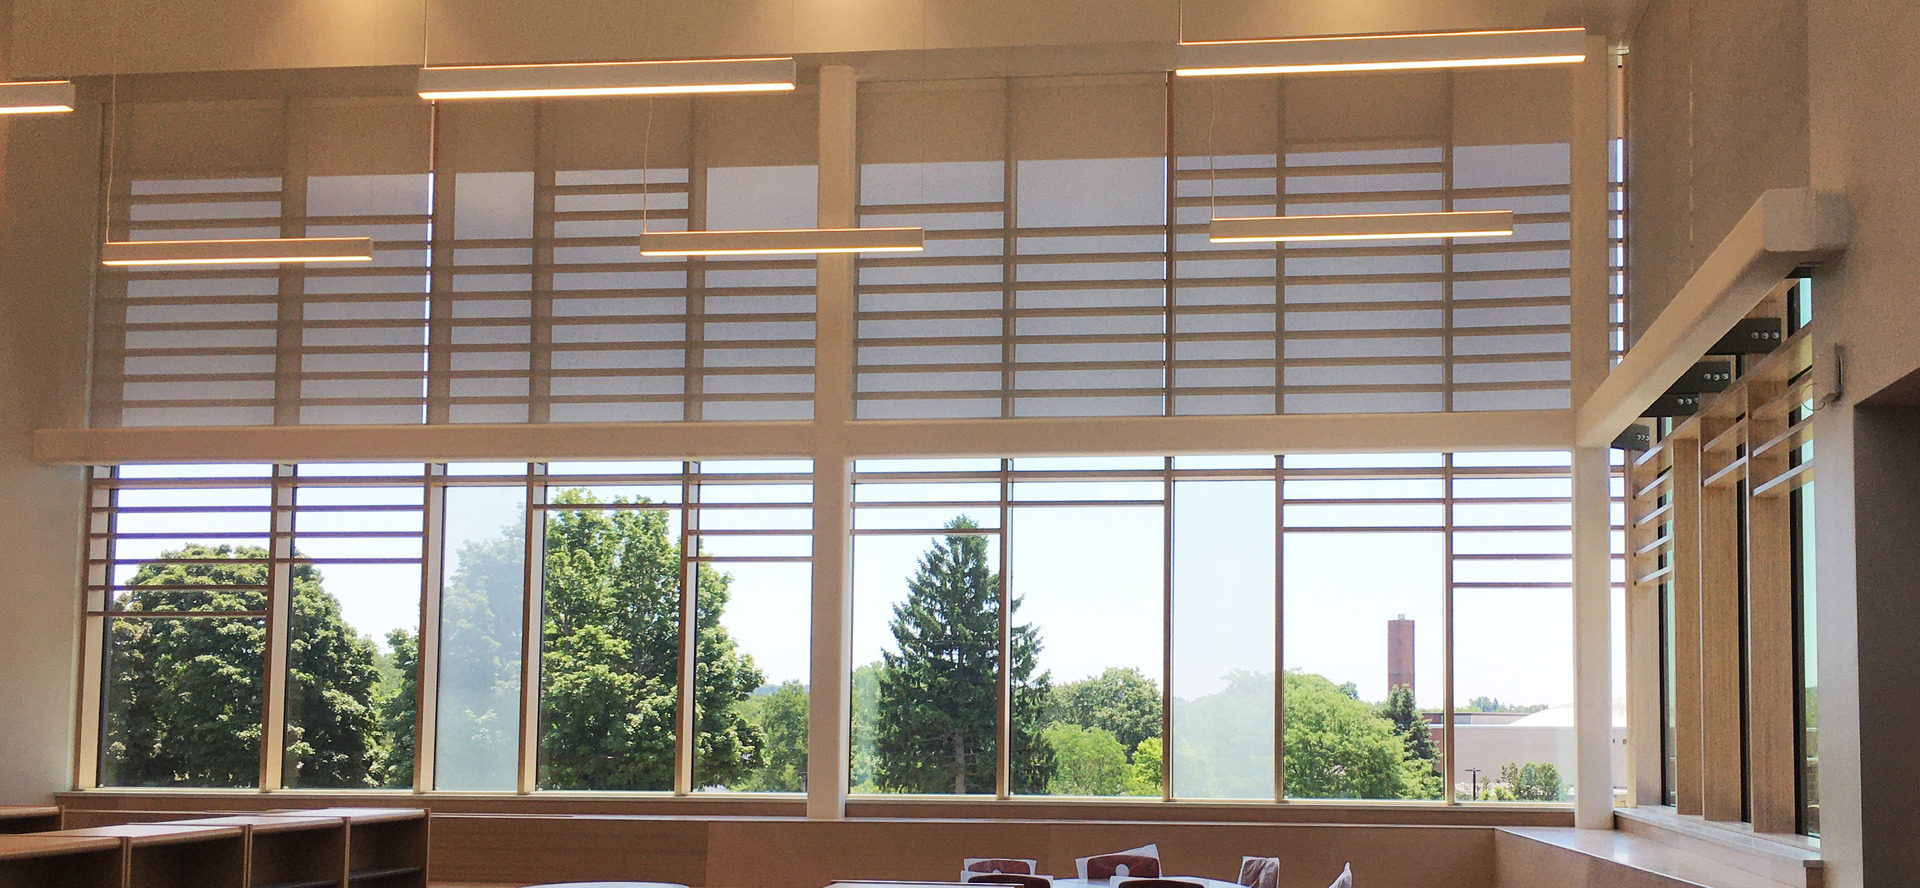 Saugus Middle/High School, located in Saugus, Massachusetts, integrated with  Lamboo® Vue™ Series - Curtain Wall System & Sun Shade Louvers throughout their final design.